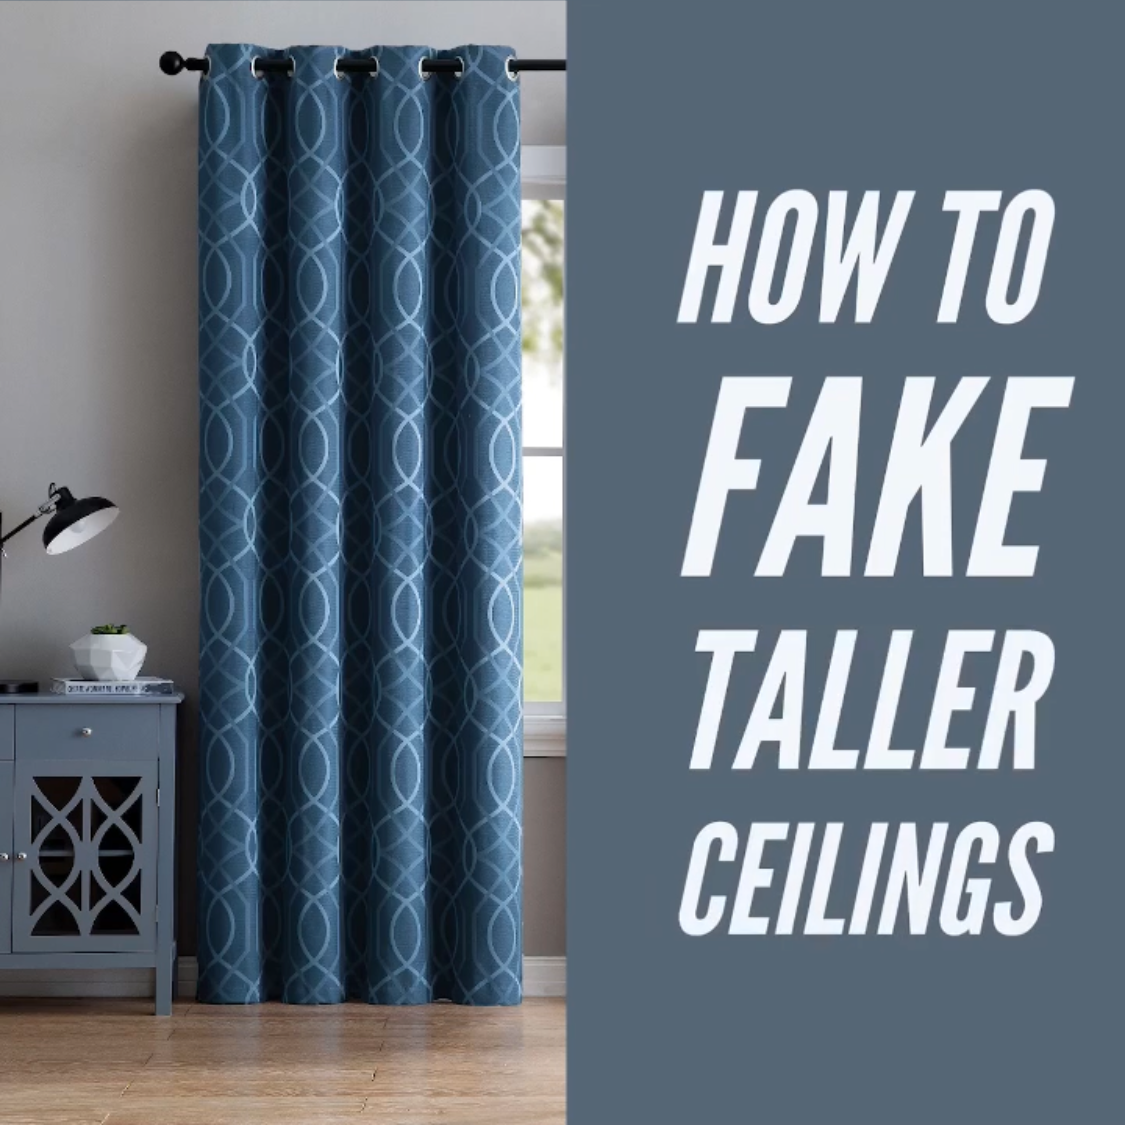 Want To Fake The Look Of Taller Ceilings Install Your Curtain Rod